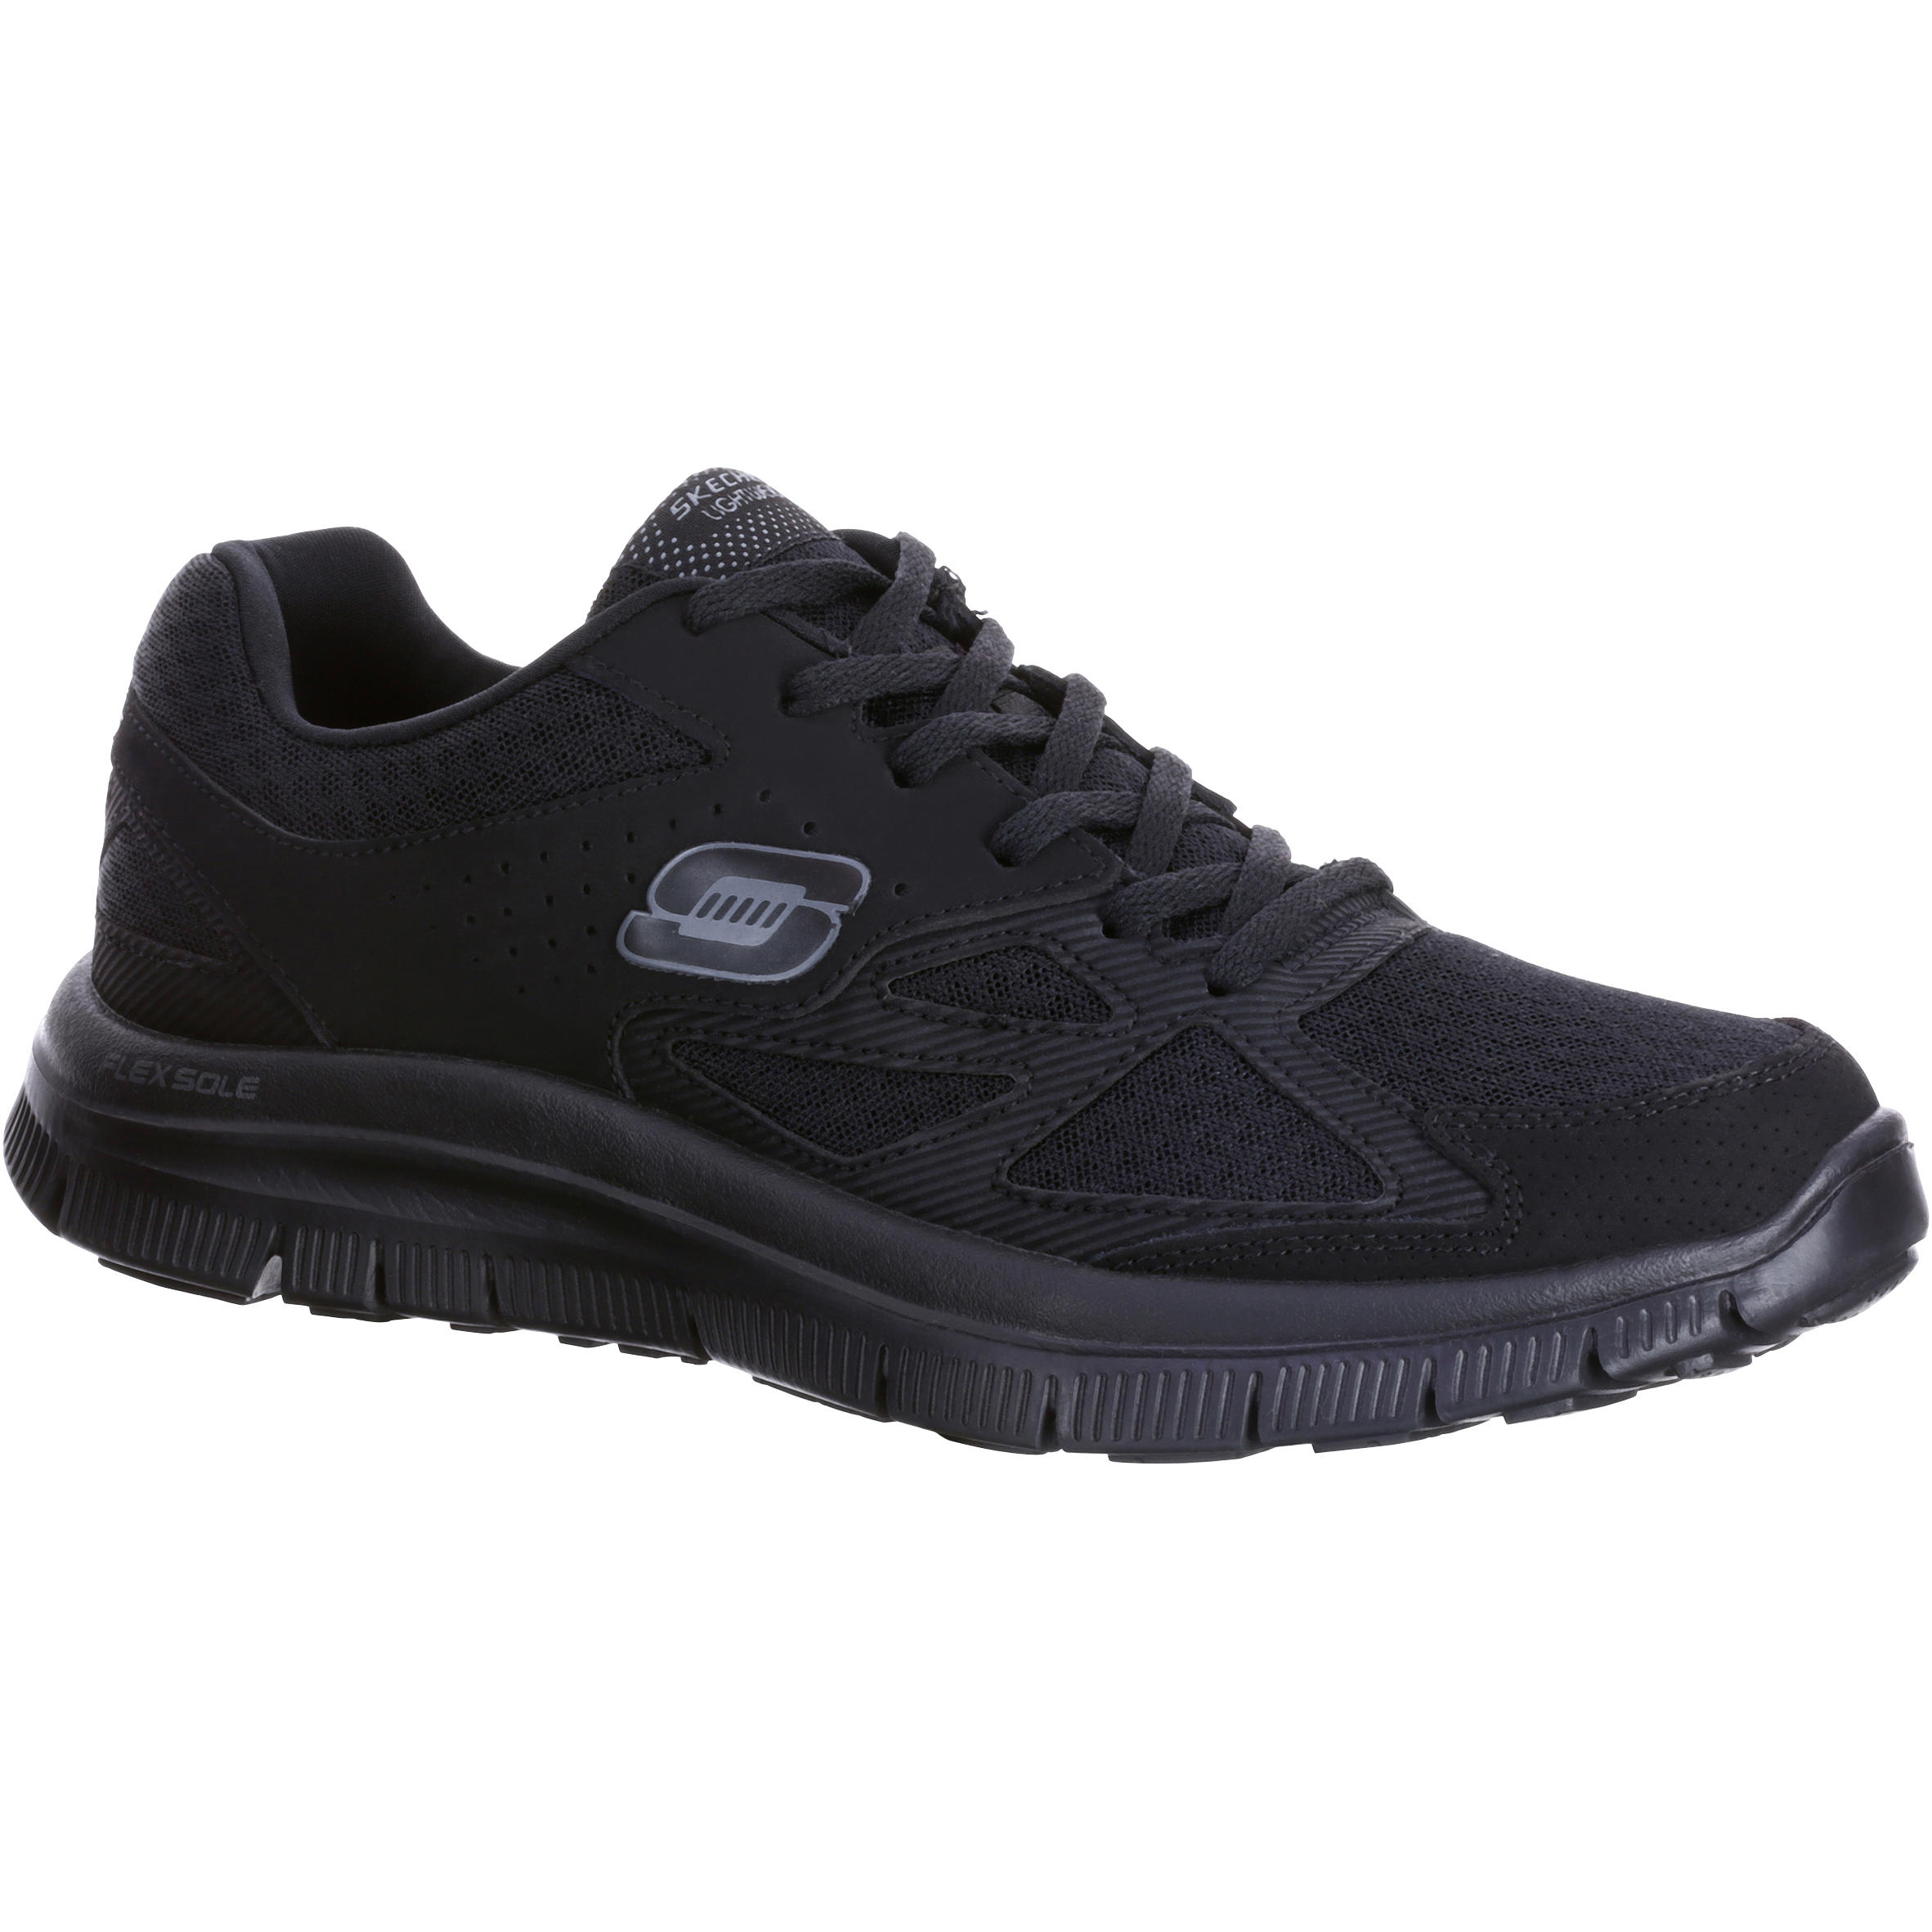 skechers chaussures marche sportive homme flex advantage noir decathlon. Black Bedroom Furniture Sets. Home Design Ideas